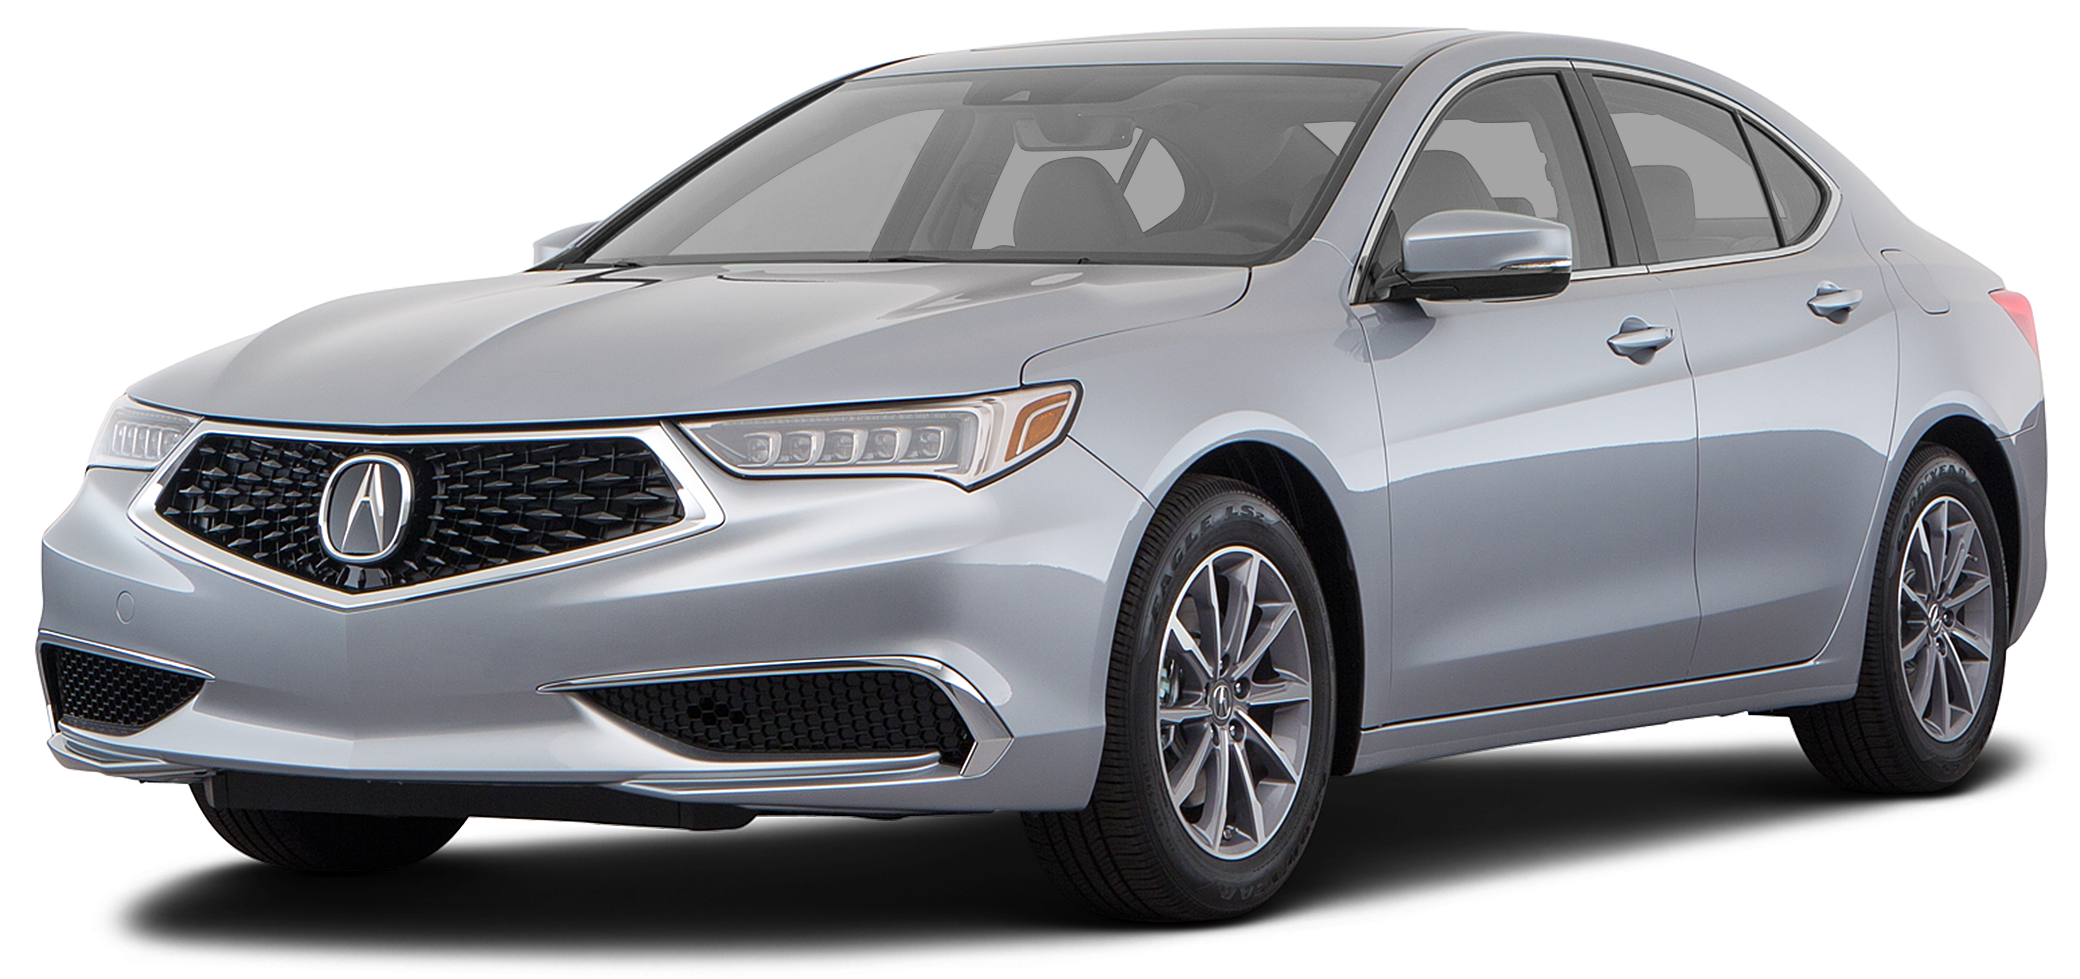 Acura Of Boardman >> 2020 Acura TLX Incentives, Specials & Offers in Boardman OH